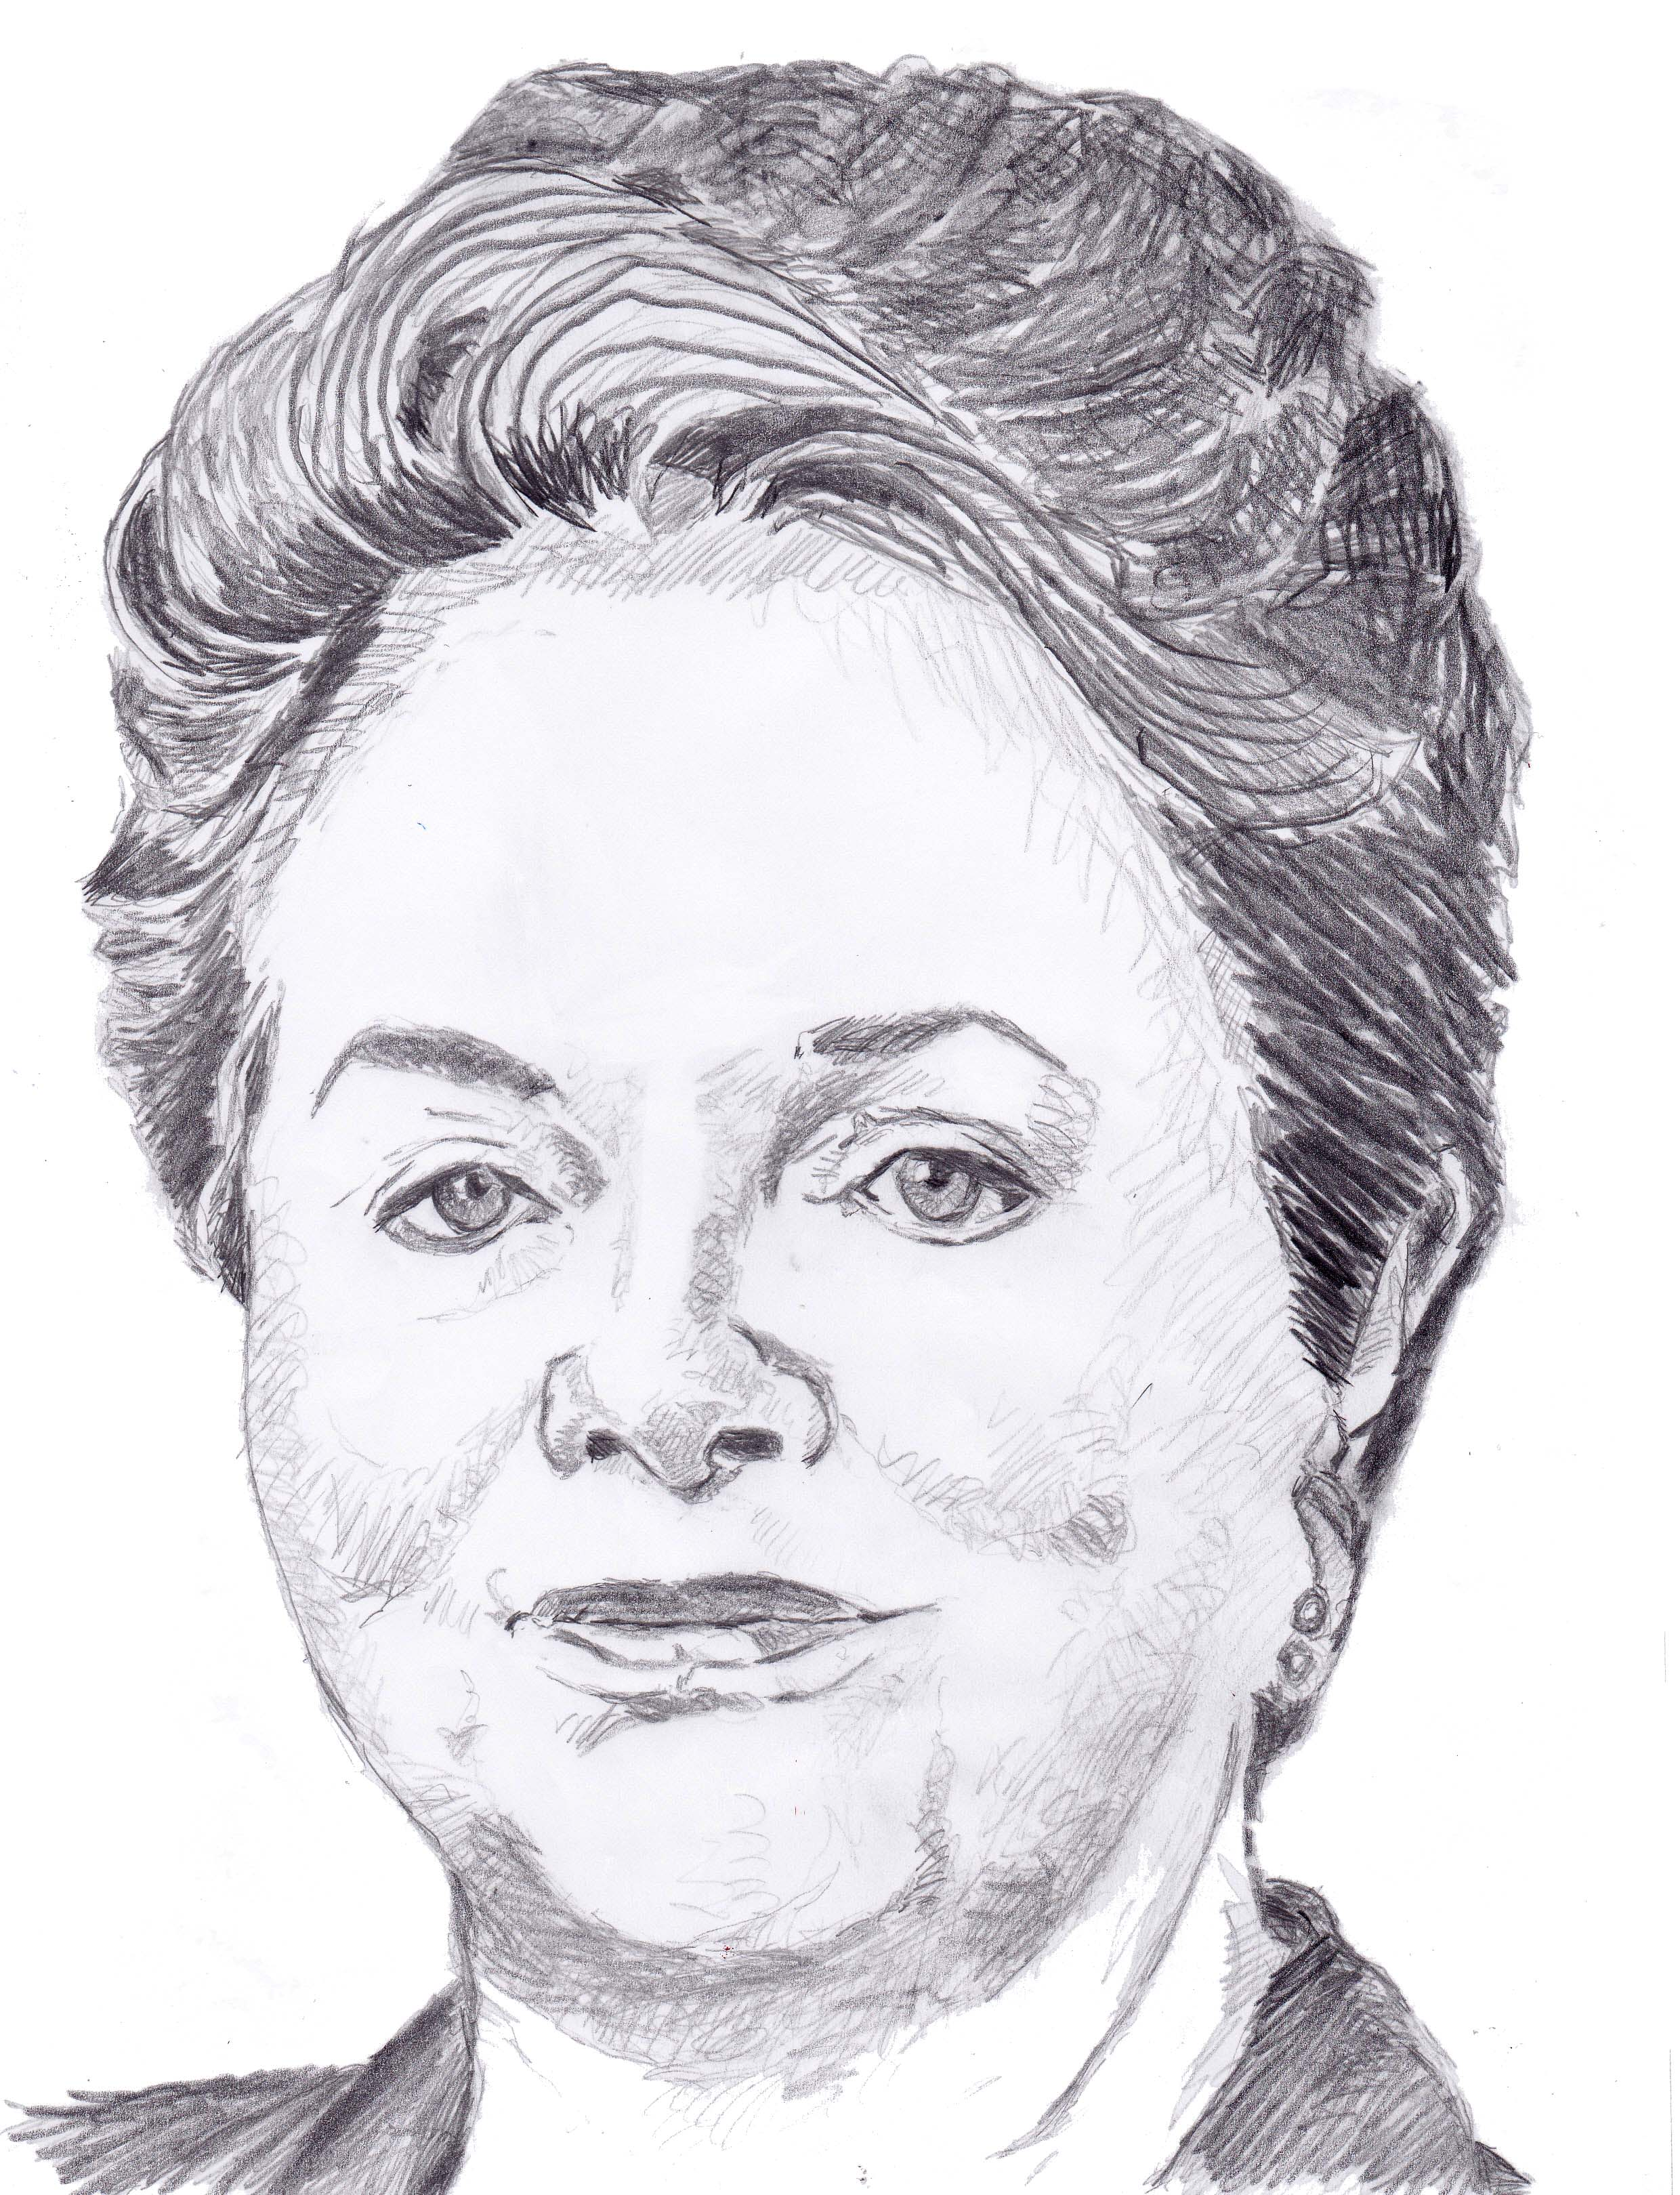 Dilma Rousseff. Crédit Muriel Epailly.